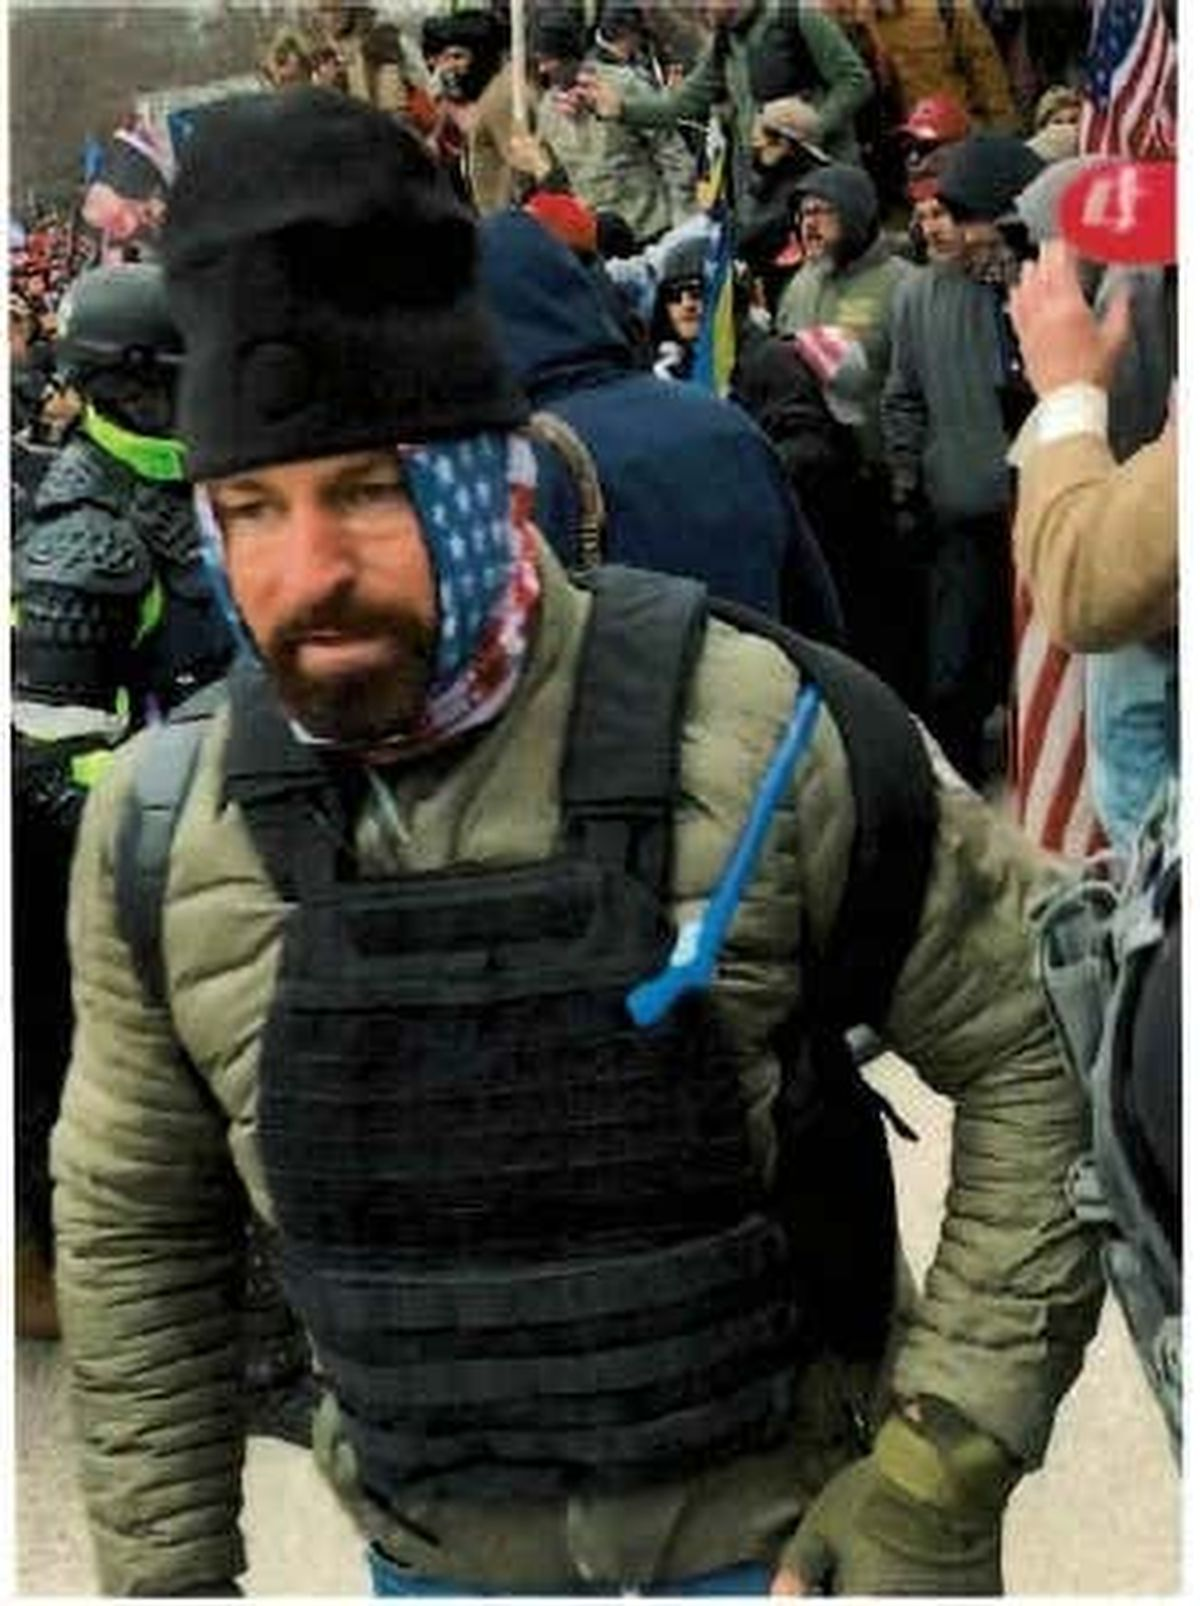 Brady Knowlton, of St. George, faces criminal charges for allegedly entering the U.S. Capitol during the Jan. 6, 2021, riot in Washington.